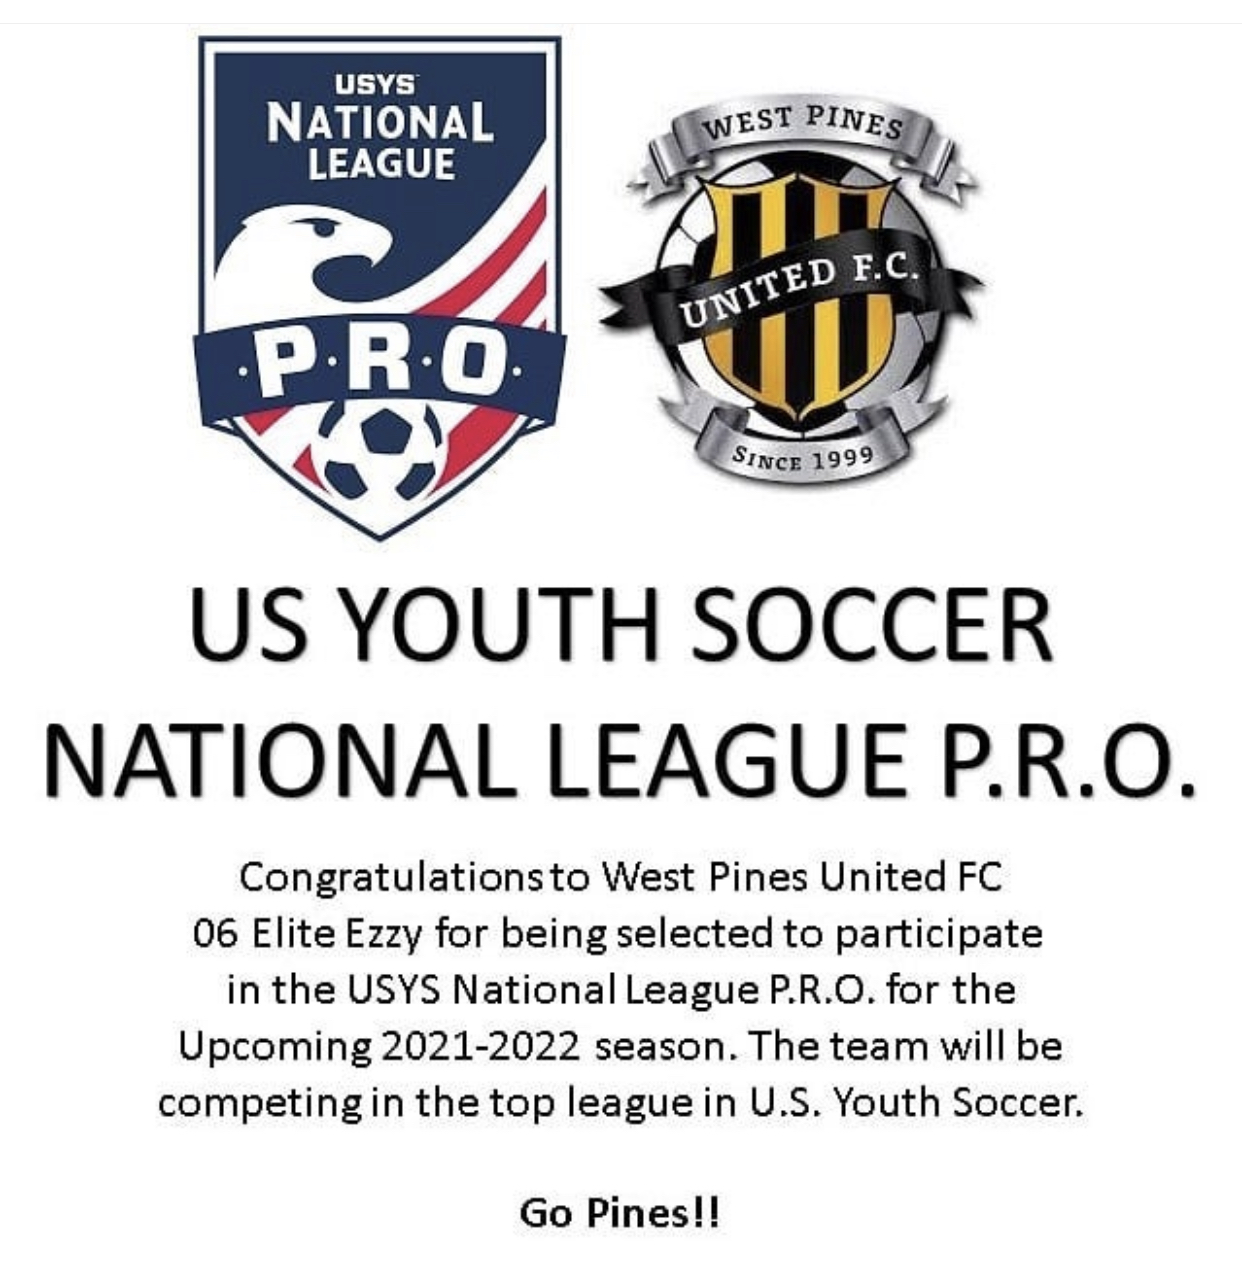 US Youth Soccer National League P.R.O.